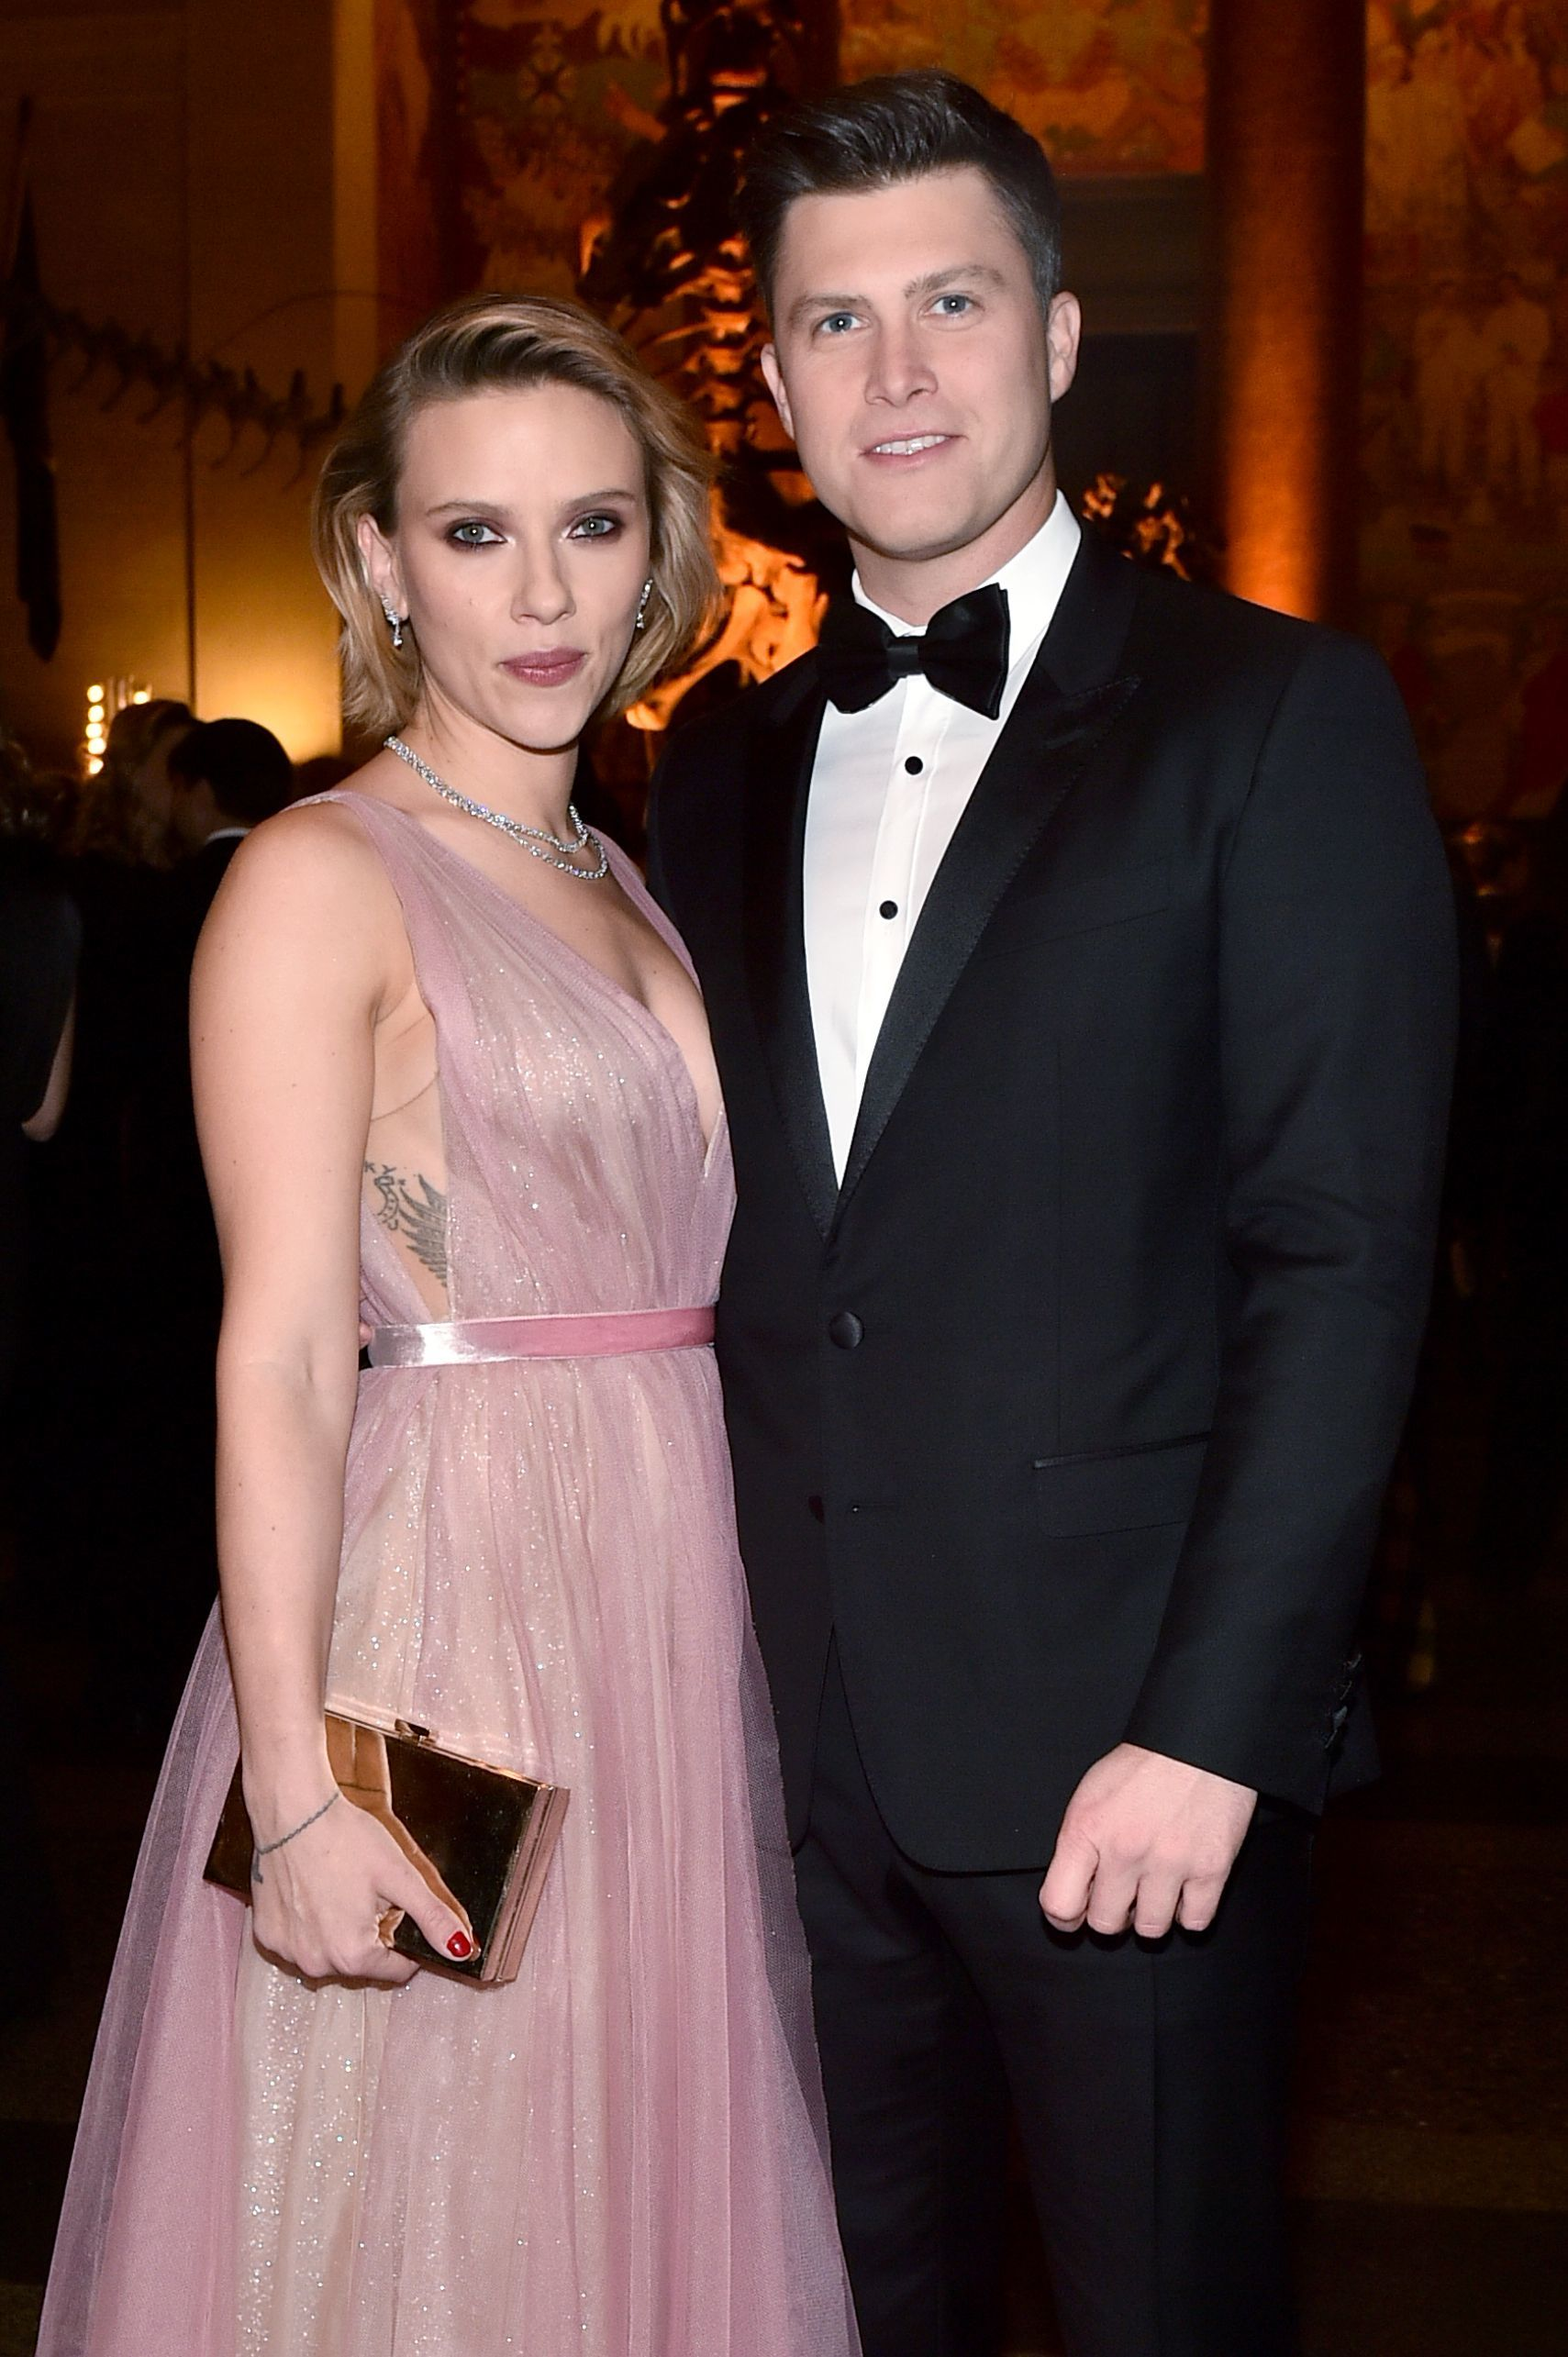 Scarlett Johansson and Colin Jost attend The American Museum Of Natural History 2018 Gala at American Museum of Natural History in New York City on Nov. 15, 2018.